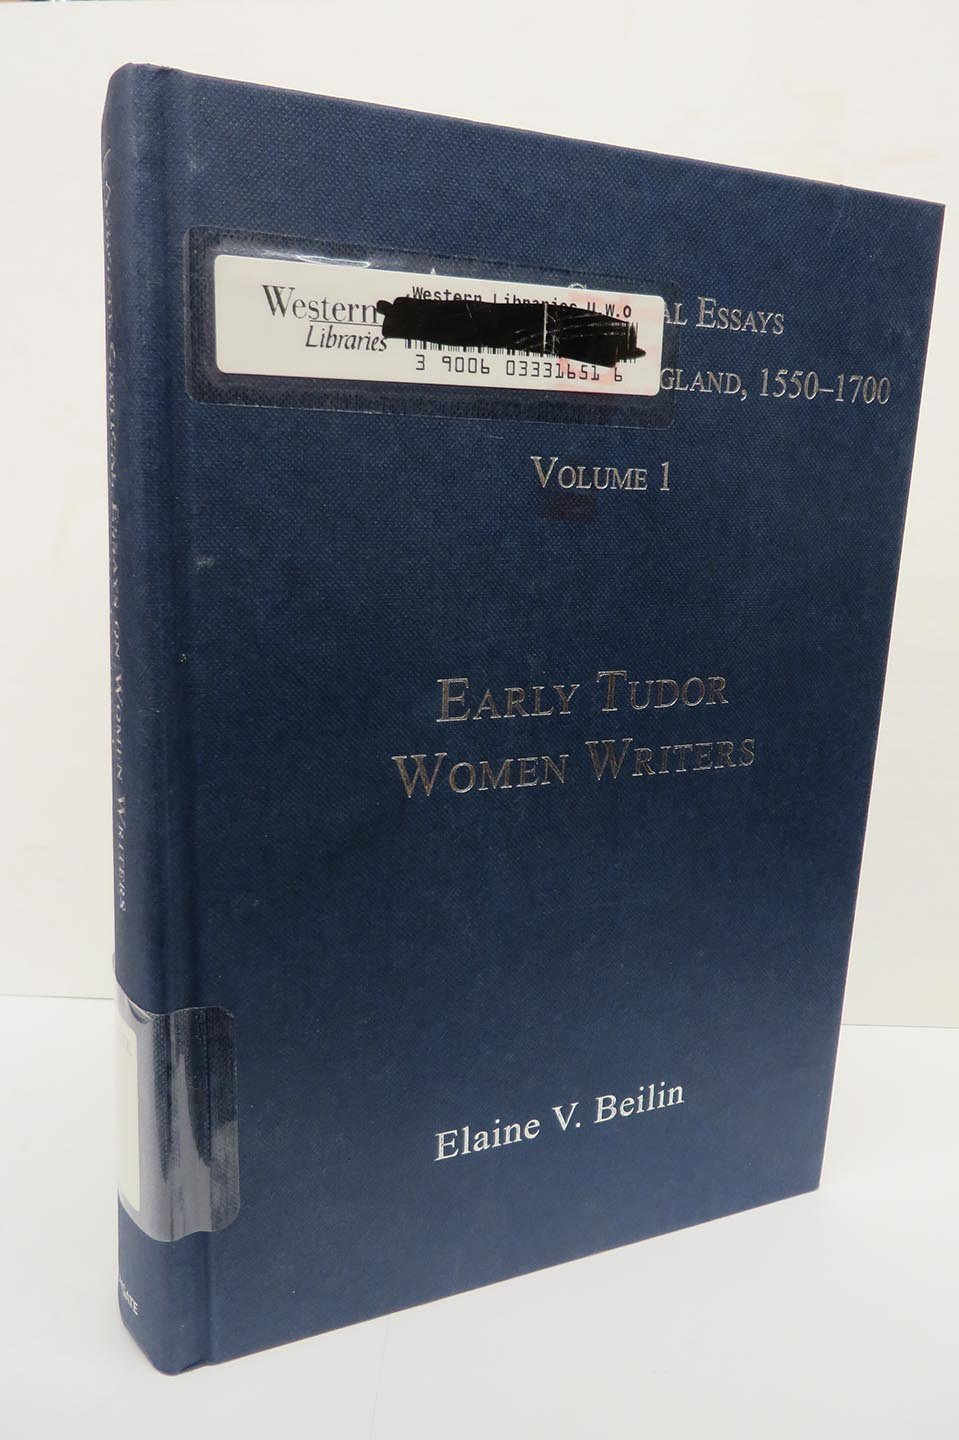 Ashgate Critical Essays on Women Writers in England, 1550-1700: Volume 1: Early Tudor Women Writers